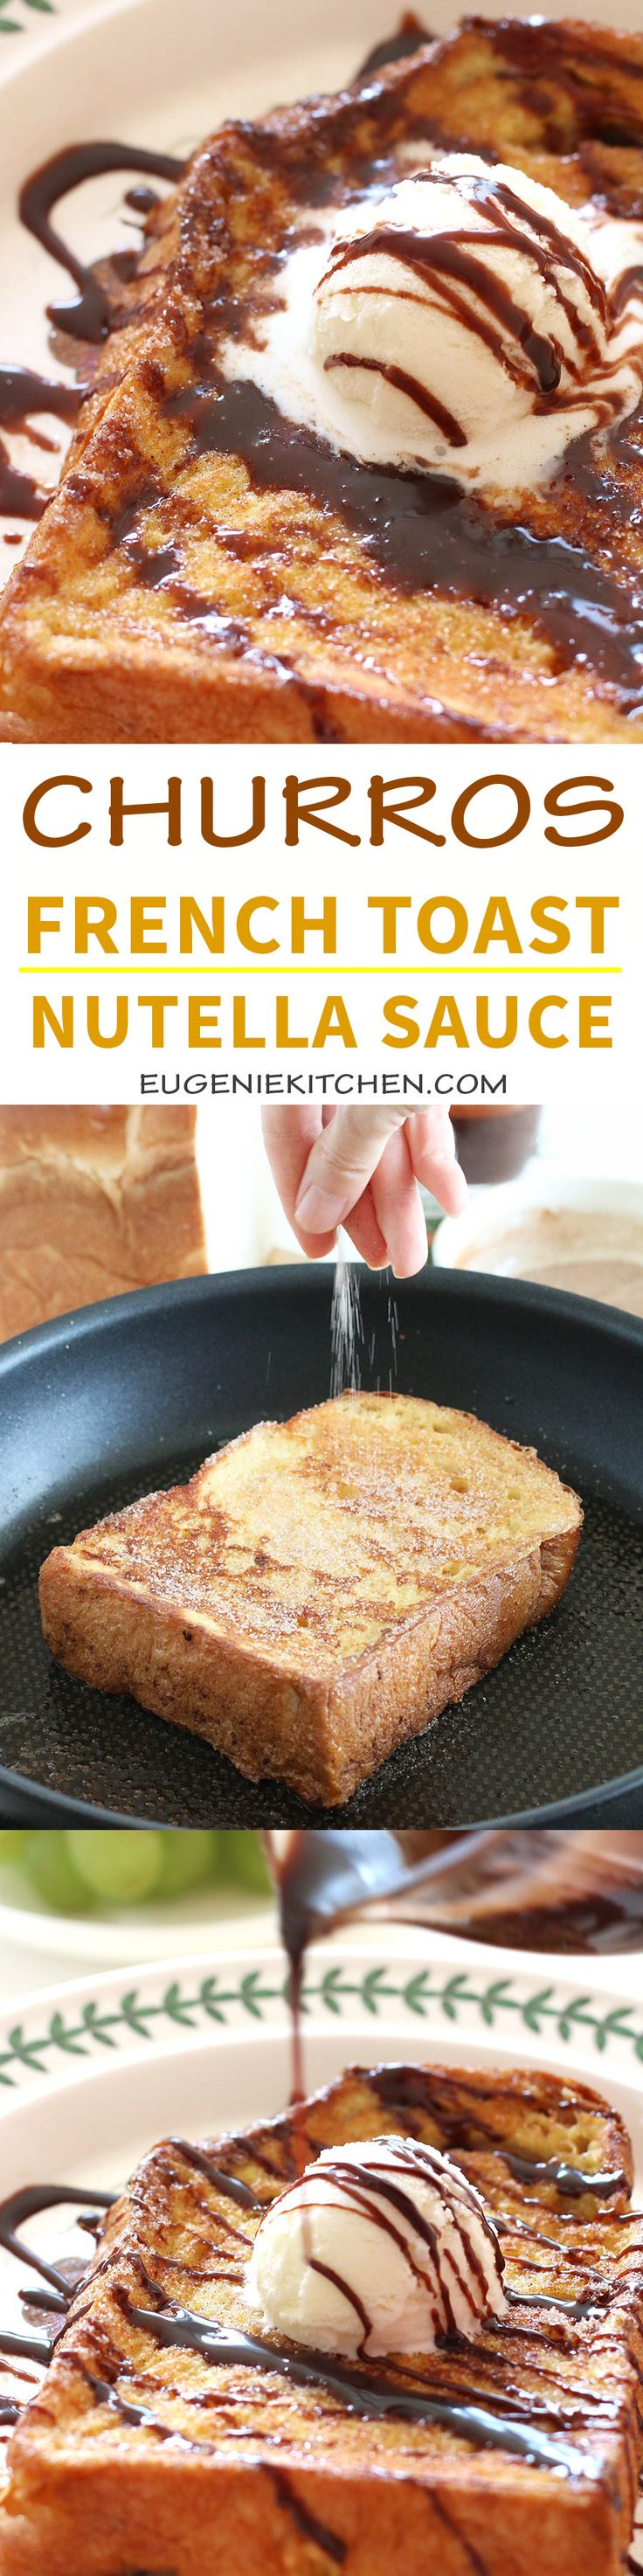 nutella sauce churros french toast with nutella sauce make this in